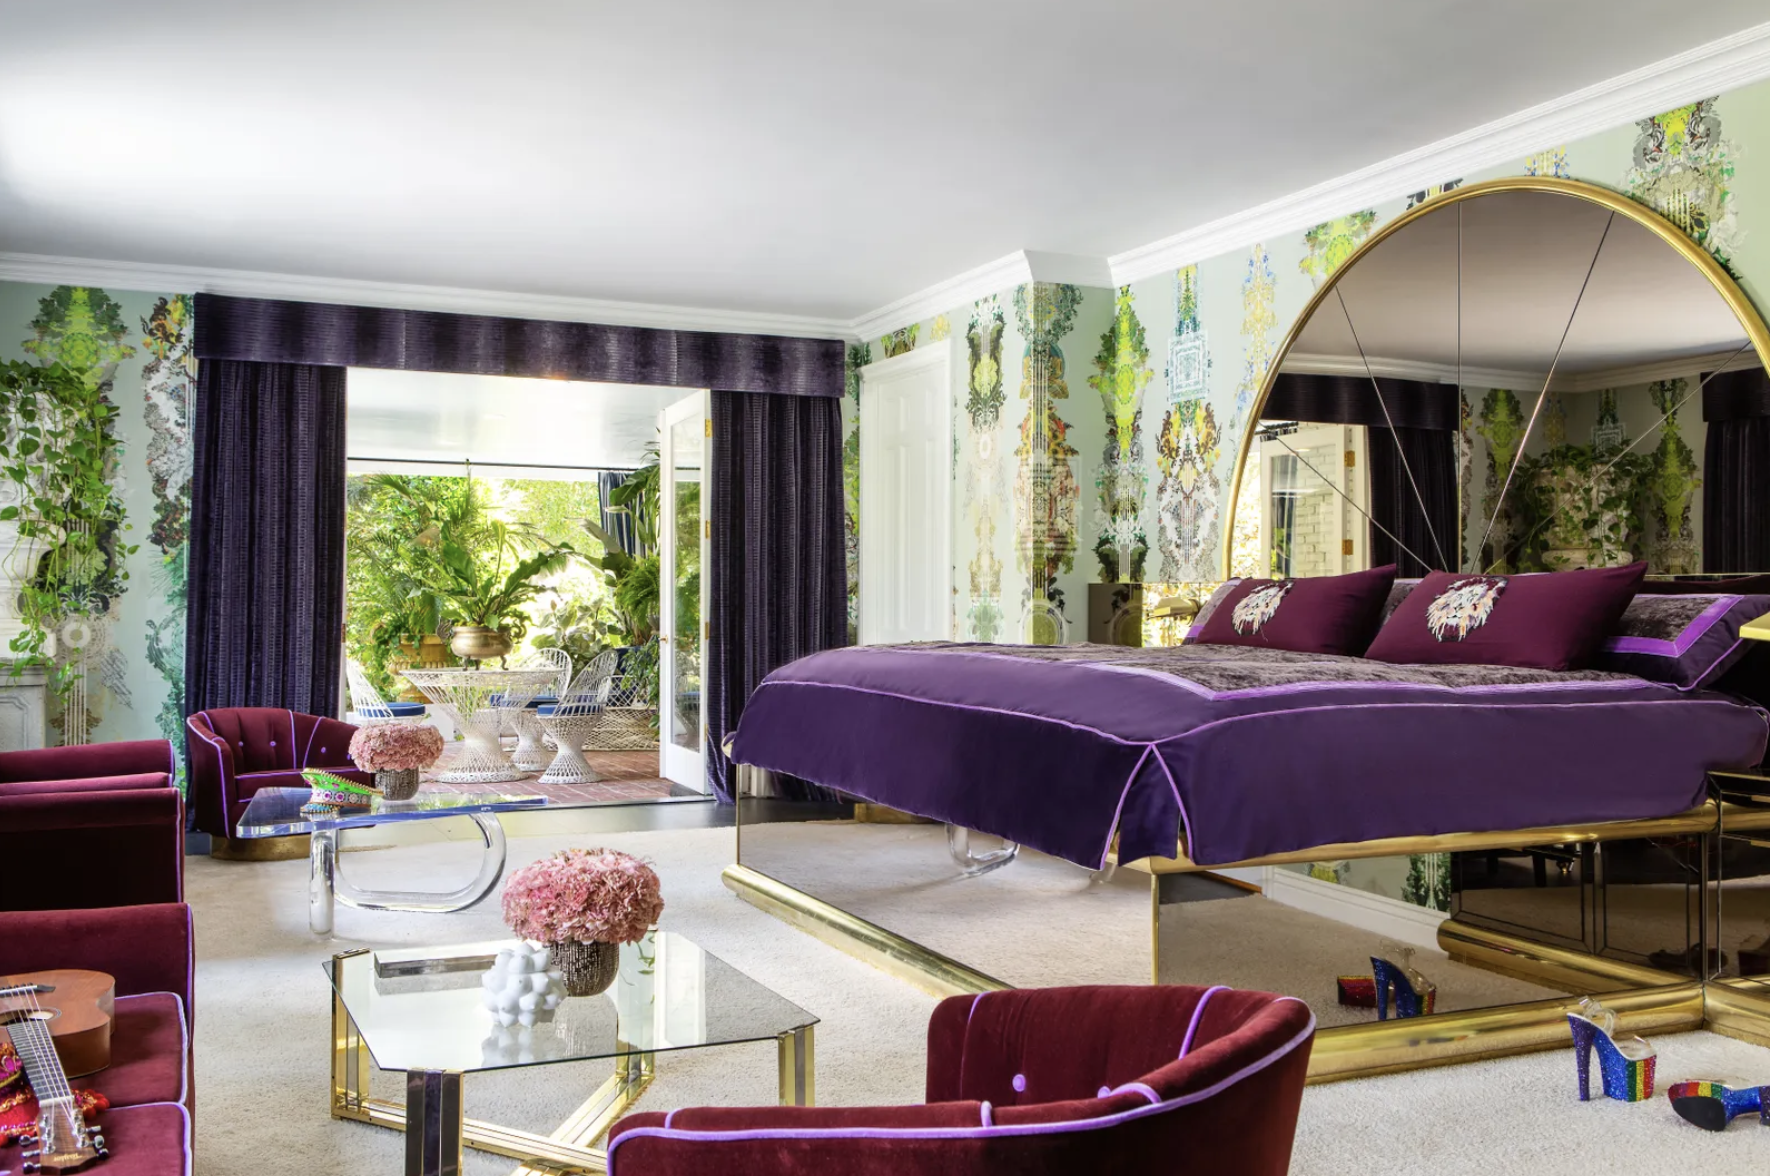 All Of Our Fav Rooms From Cara Delevingne's Insane Home (It Has A Vagina Tunnel, BTW)